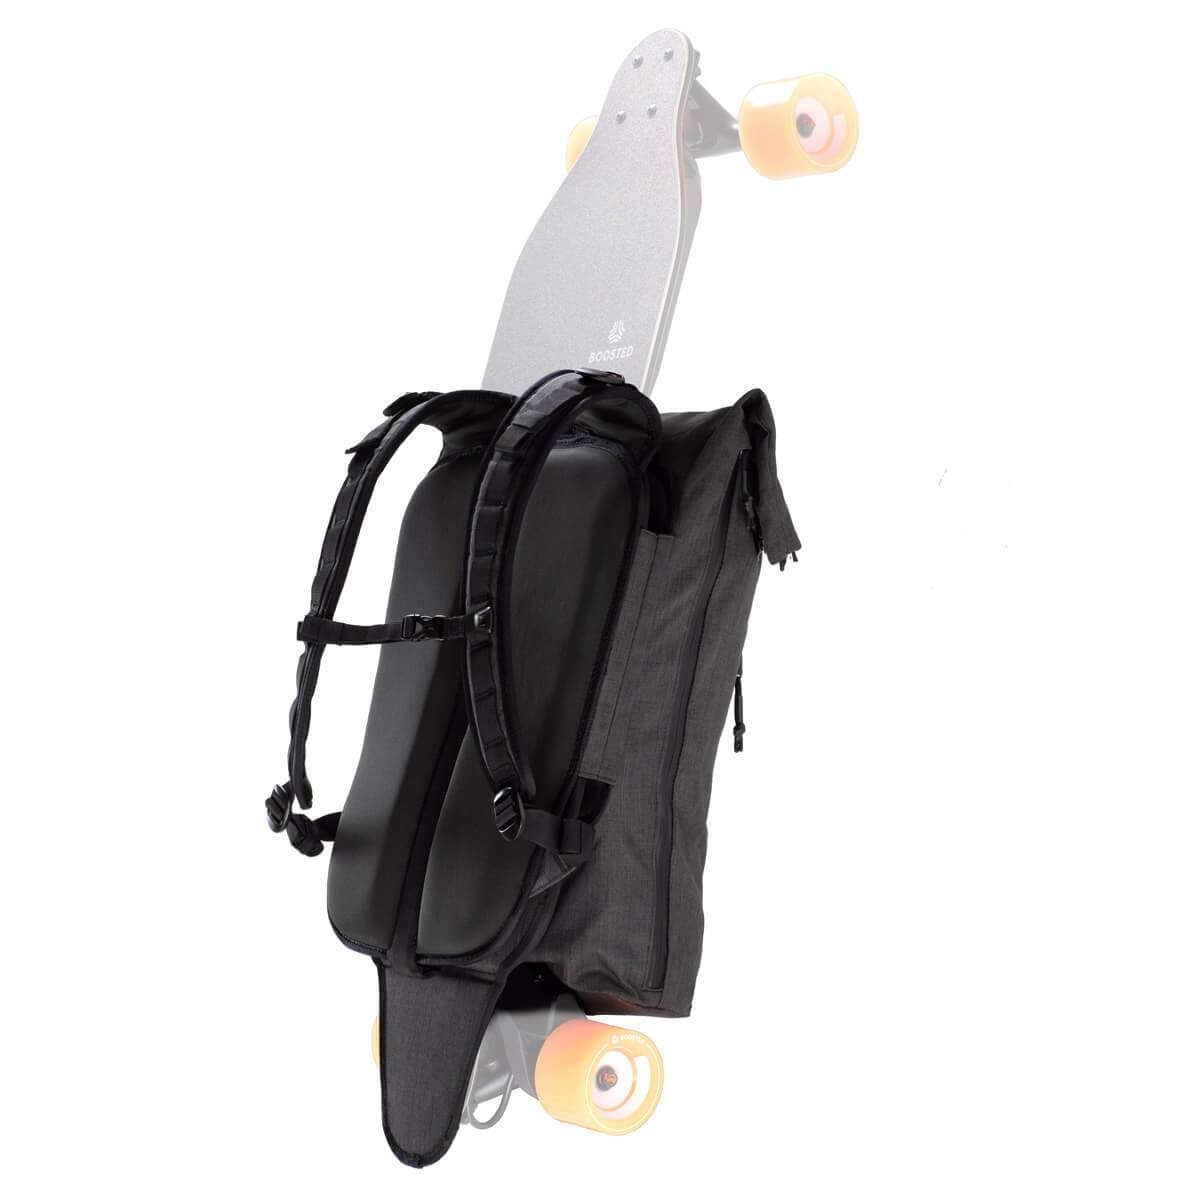 Boosted Board Longboard Cover and Charger Pouch Combo